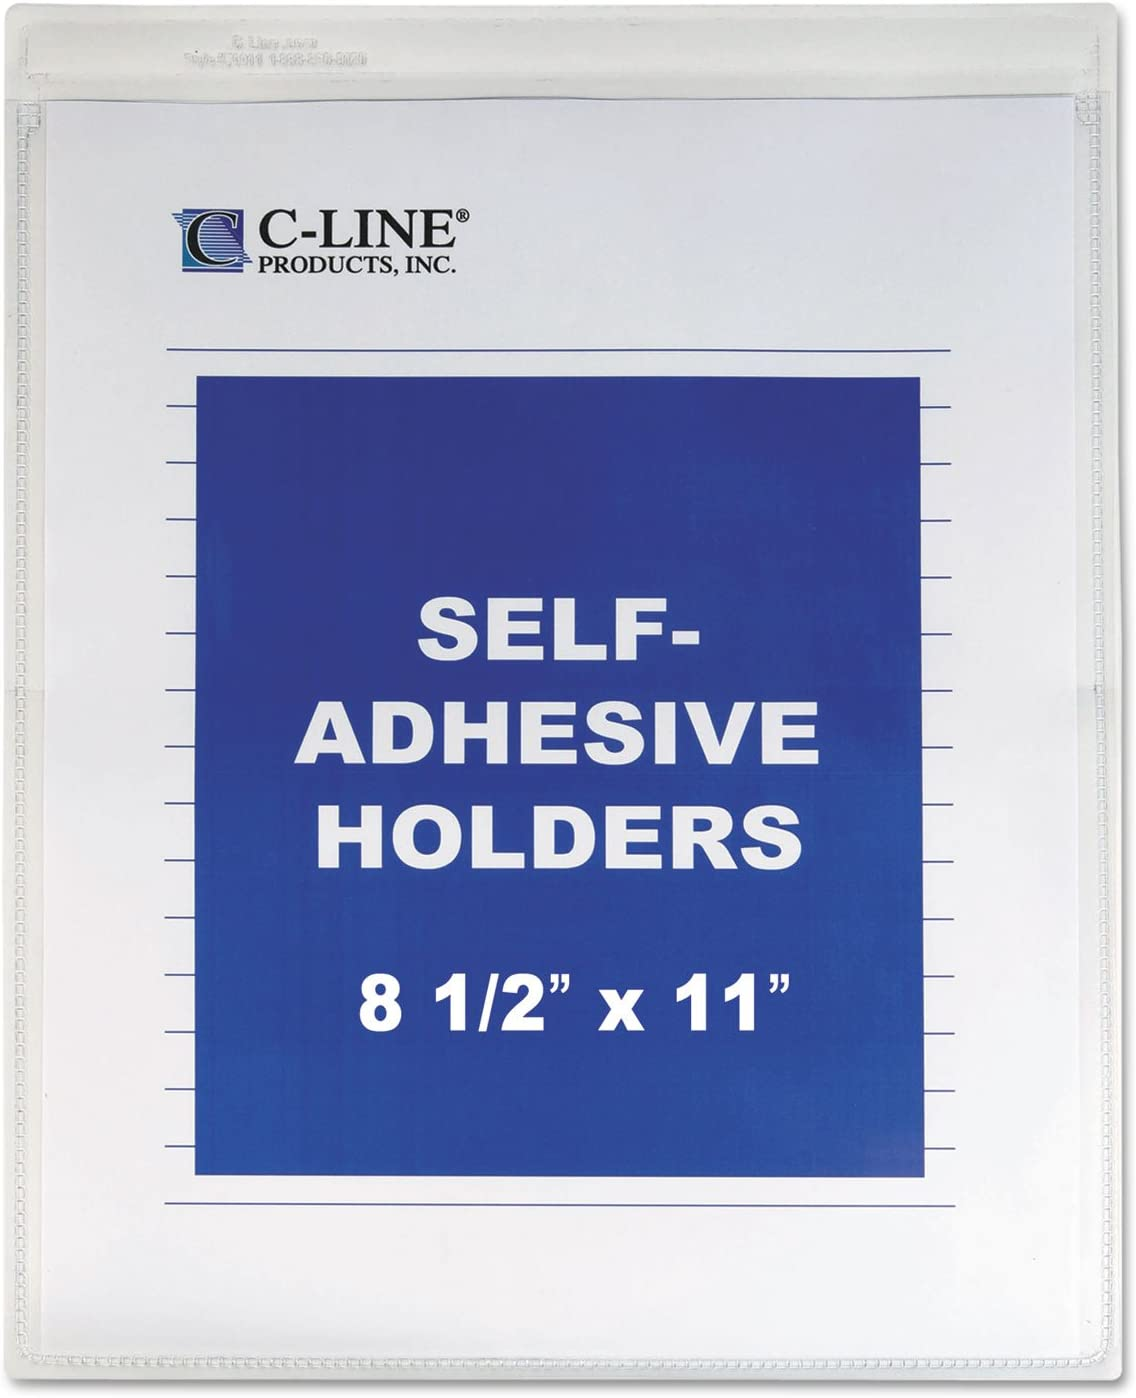 C-Line Super beauty product restock quality top 70911 Self-Adhesive Shop Limited time cheap sale Heavy Holders Ticket 15-Inch